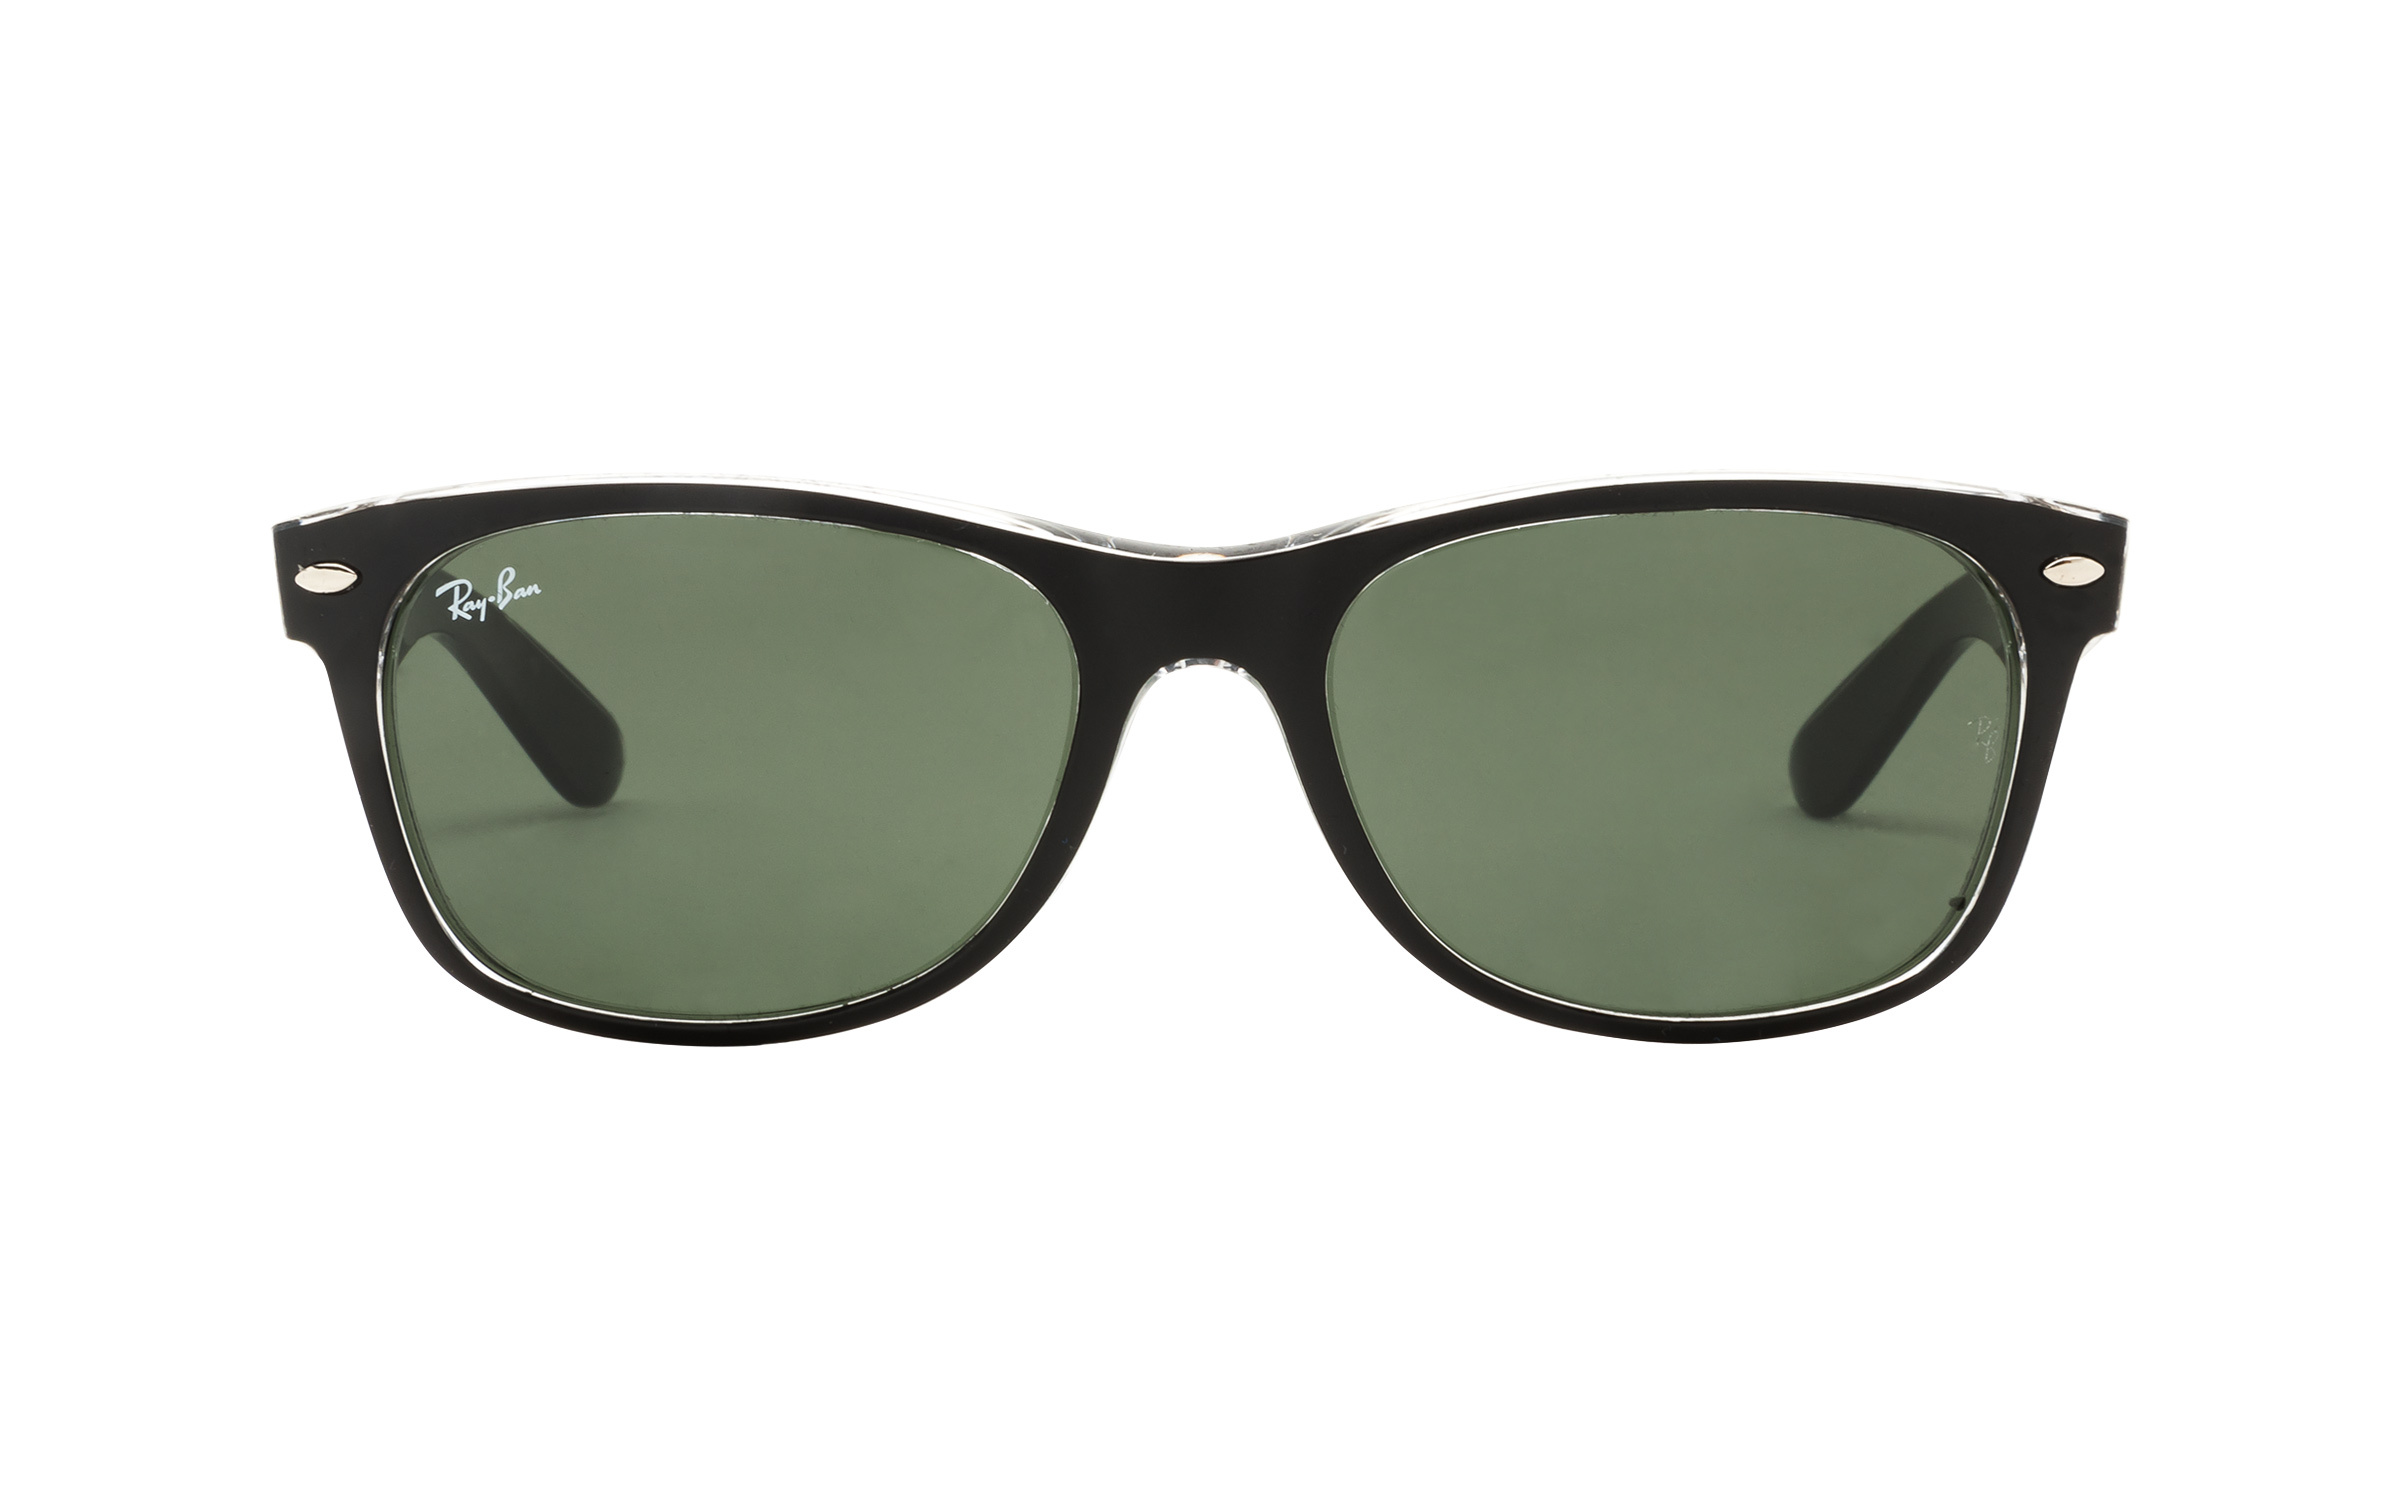 Ray-Ban RB2132 6052 55 Sunglasses in Clear Black - Online Coastal